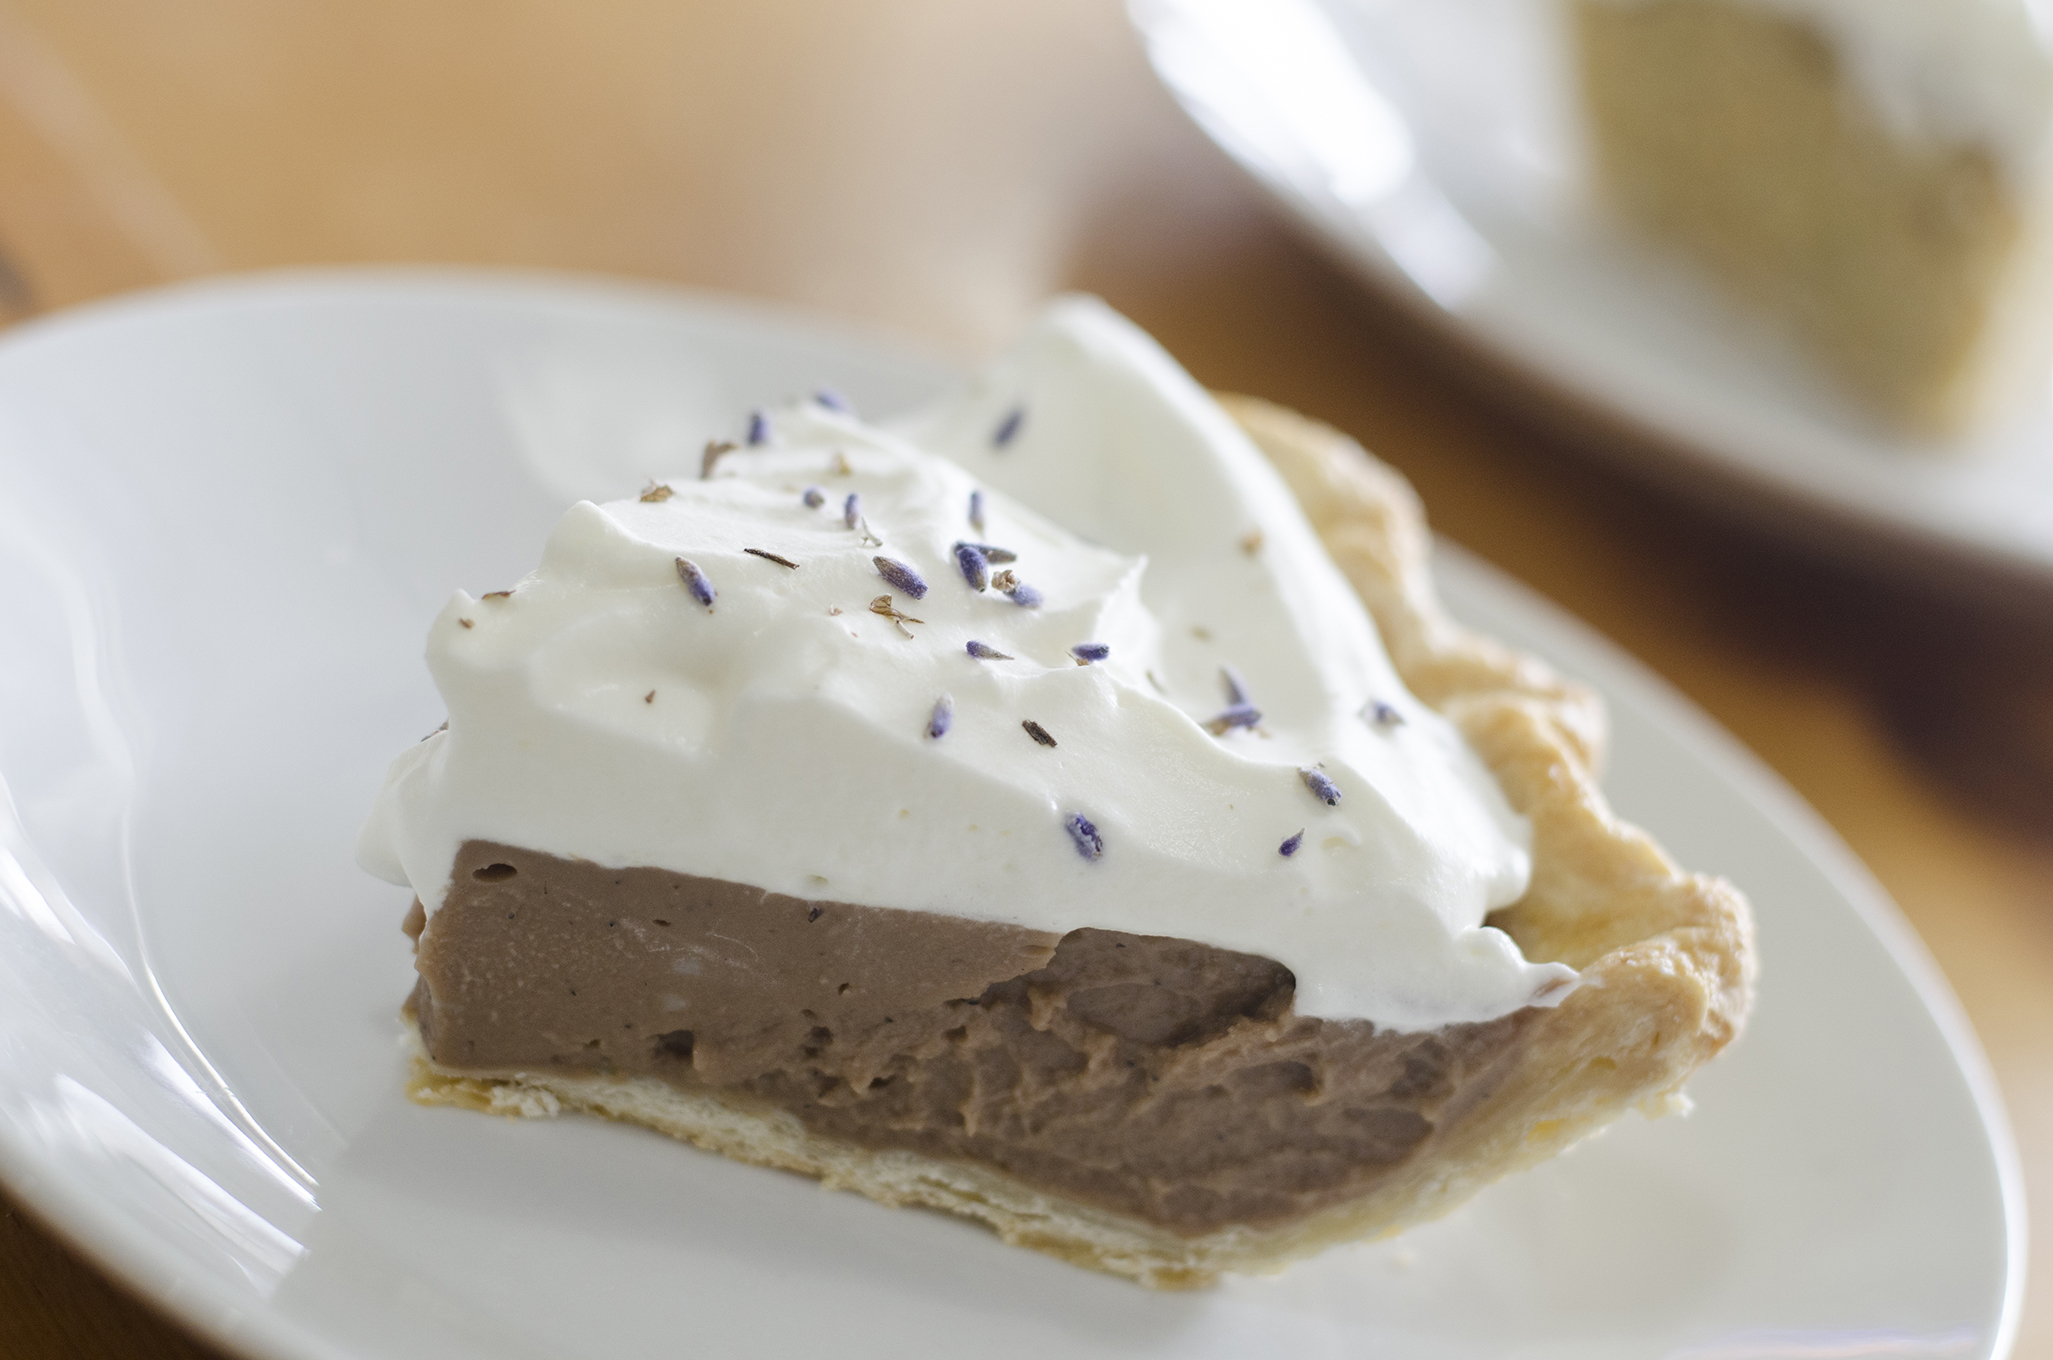 Earl Grey Chocolate Cream pie from Riverside Pie Cafe in Windsor, Ontario.